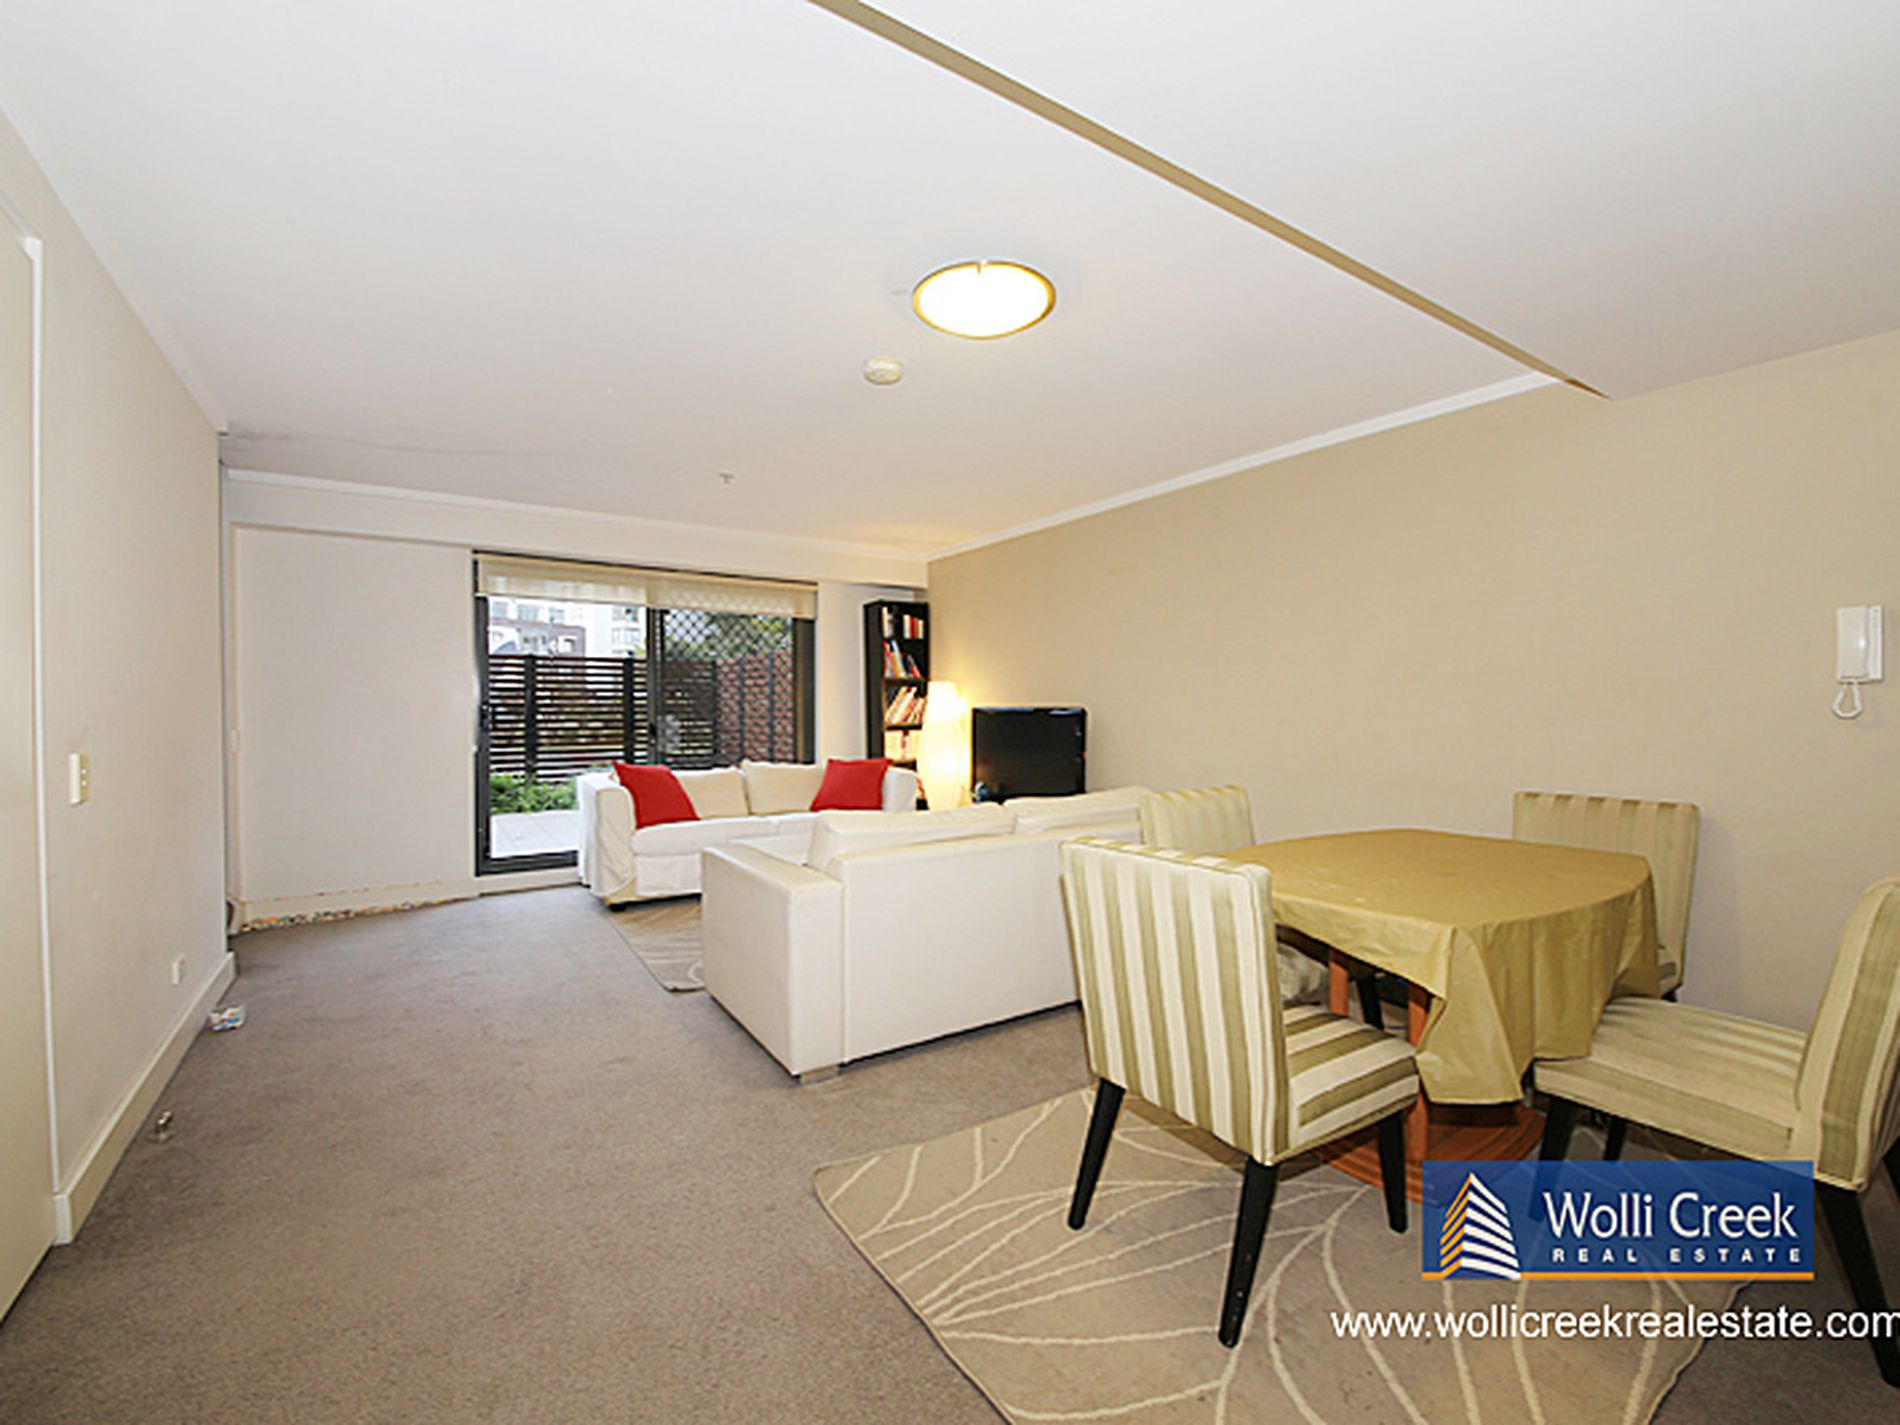 B107 / 35 Arncliffe St, Wolli Creek